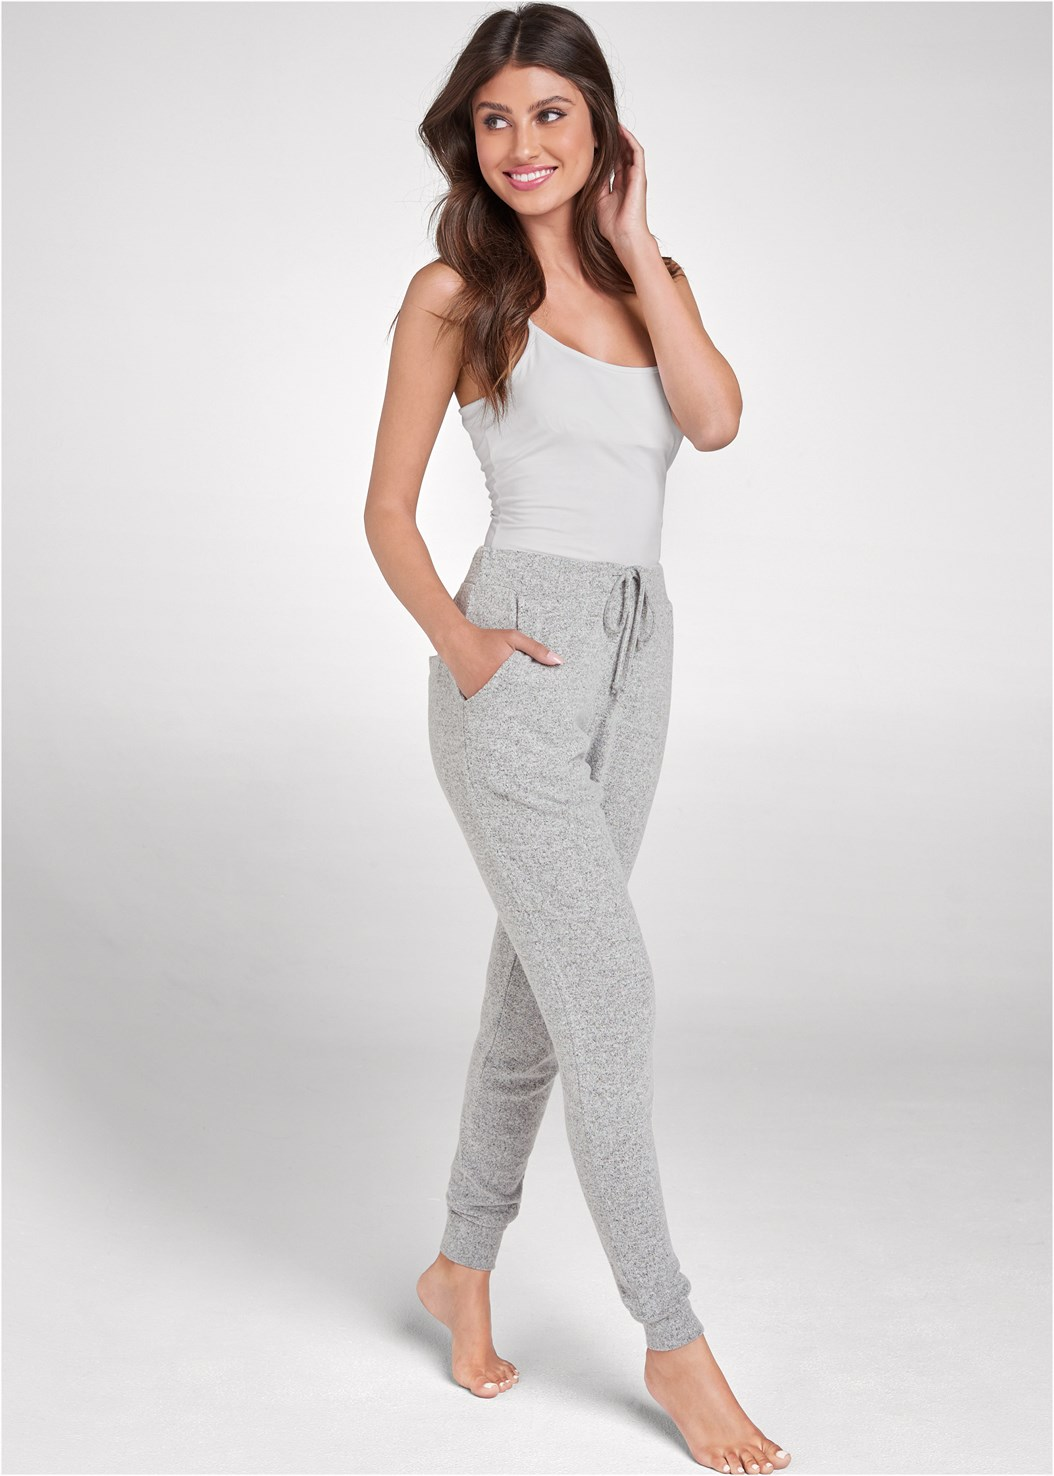 Cozy Lounge Hacci Joggers,Basic Cami Two Pack,Lace Cami,Cozy Knot Detail Hacci Sweatshirt,Full Figure Strapless Bra